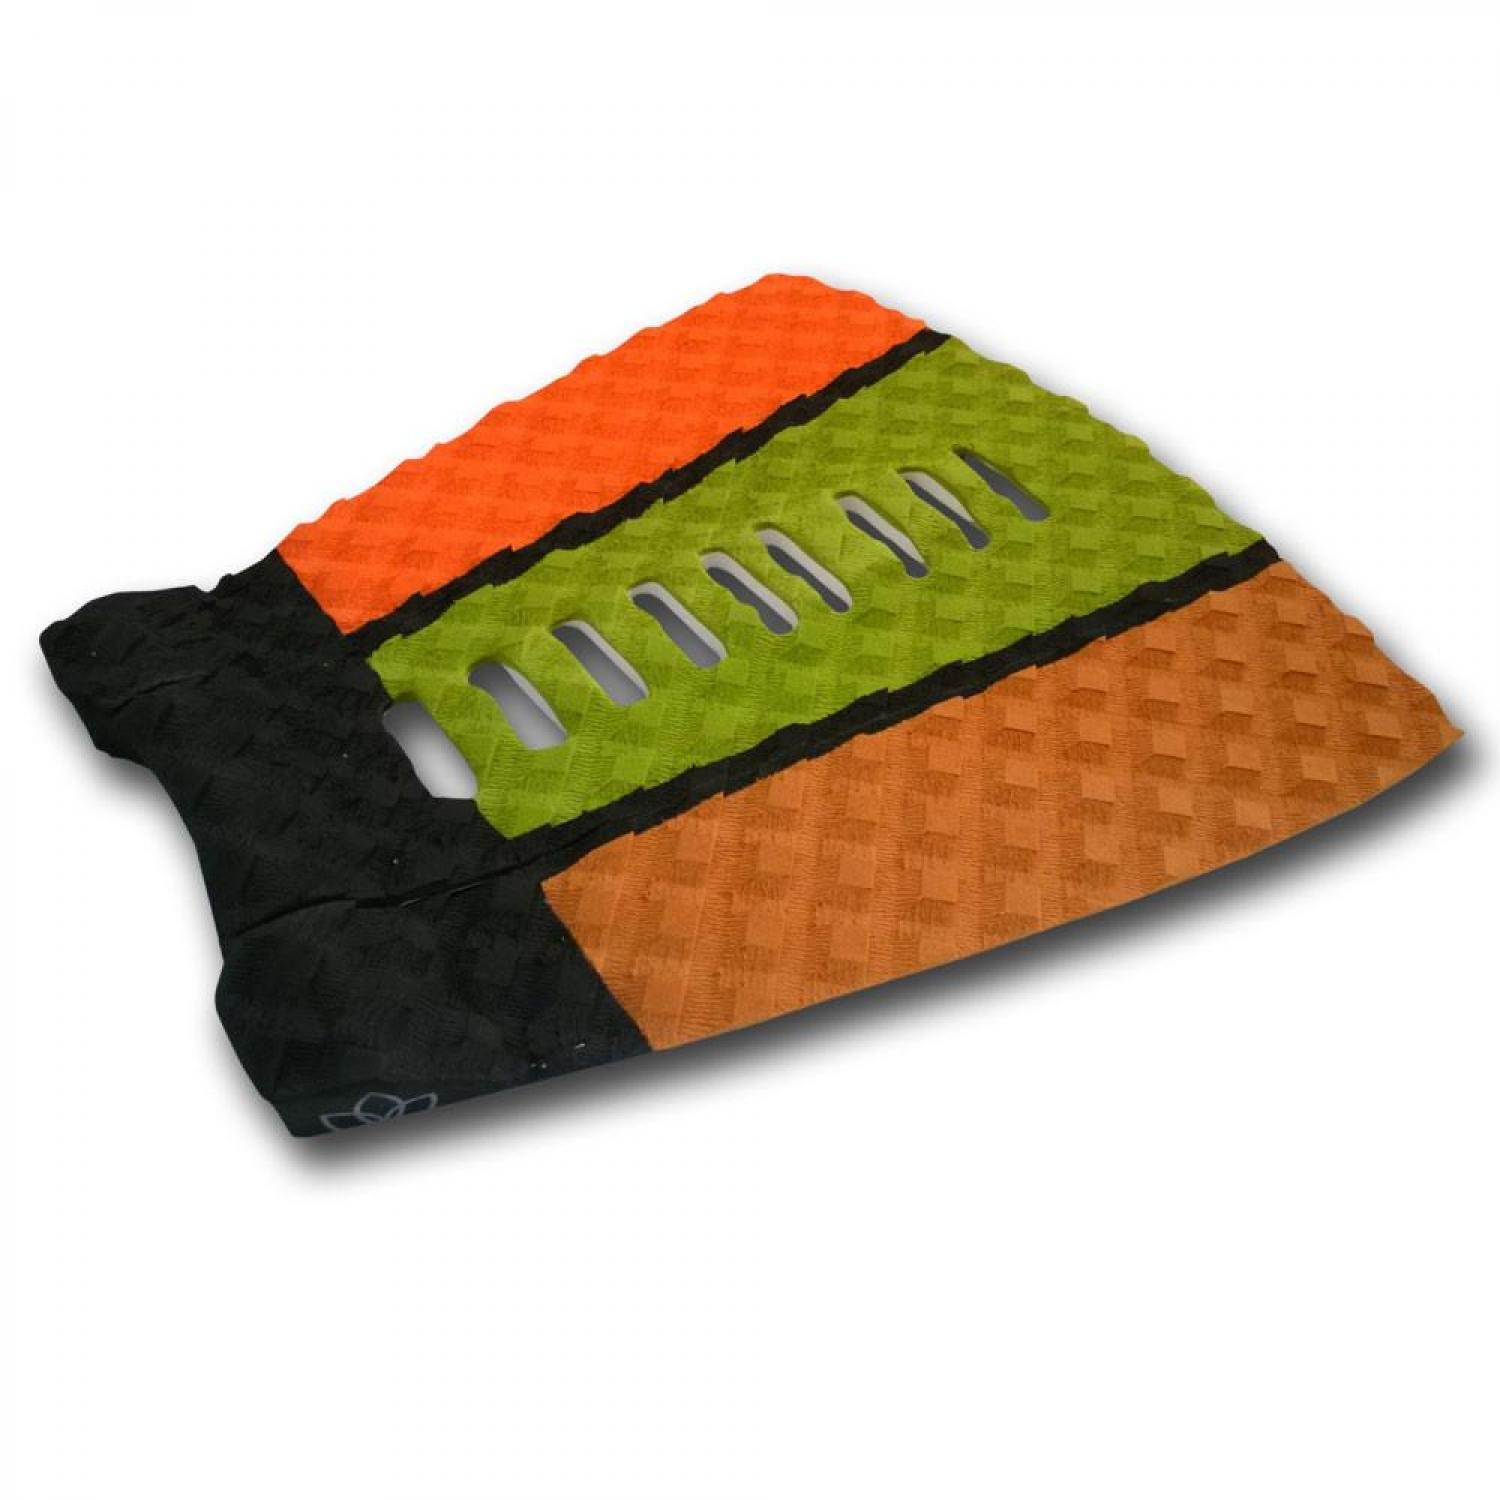 Decoy 3 piece Traction Pad Orange [STAY COVERED]